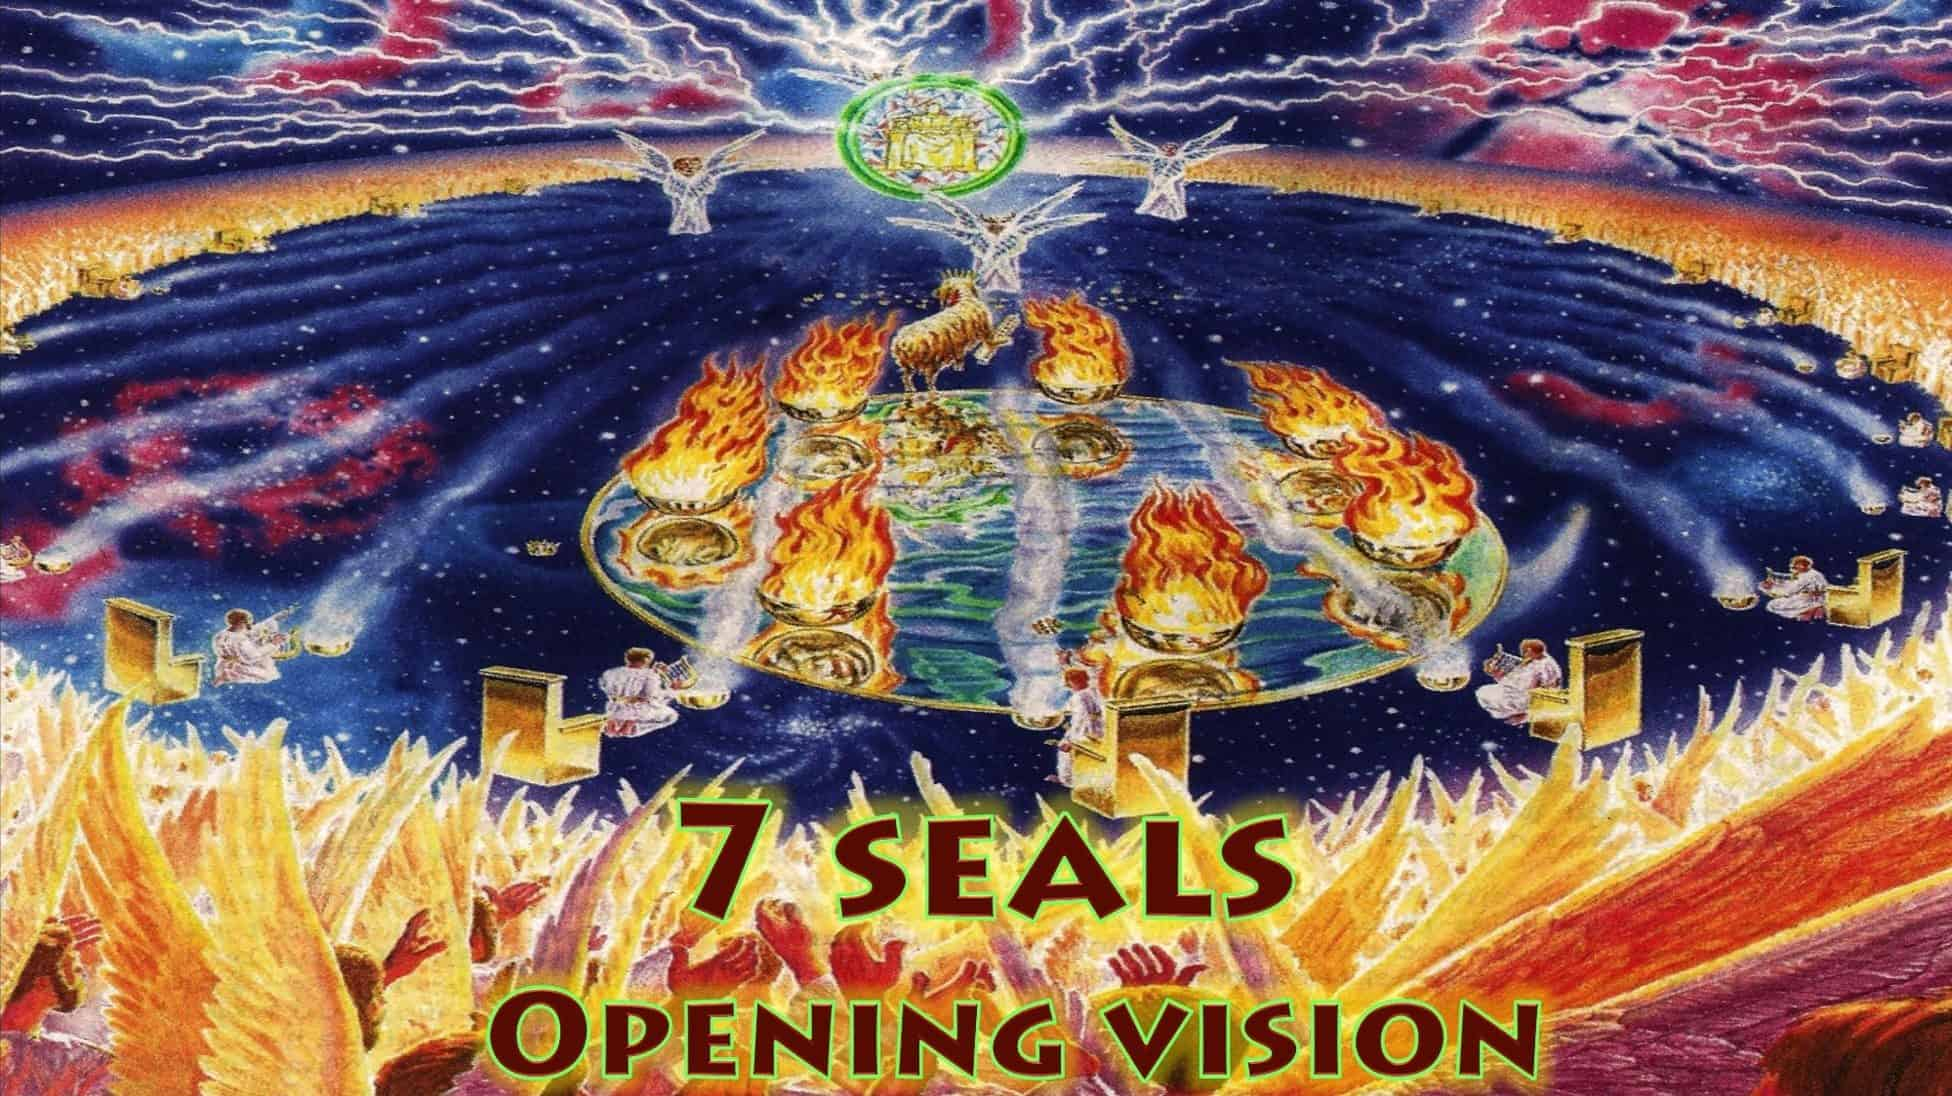 Seven Seals,7 Seals,Opening Vision,Throne,7 Spirits,24 Elders,Lamb Opens Scroll,Heaven Vision,Revelation Chapter 4,Book of Revelation,Revelation Chapter 5,Apocalypse